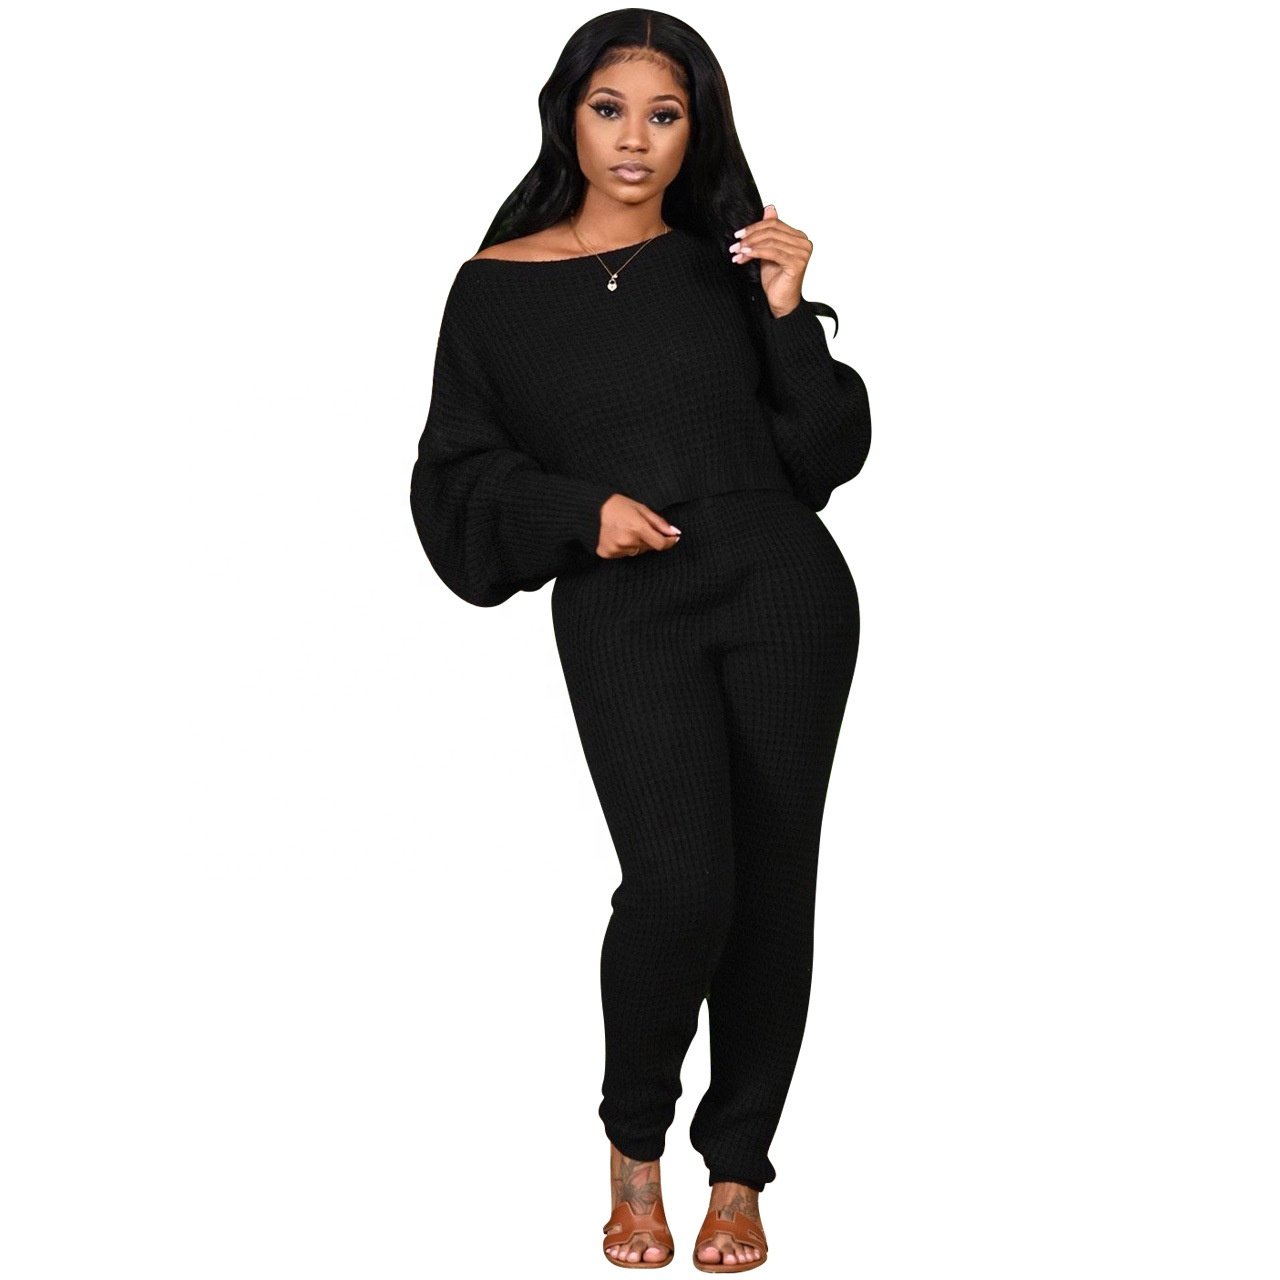 2020 New Arrive Outfits Long Sleeve Casual Women Two Piece Knitted Sweater Clothing Pants Suits Set Winter